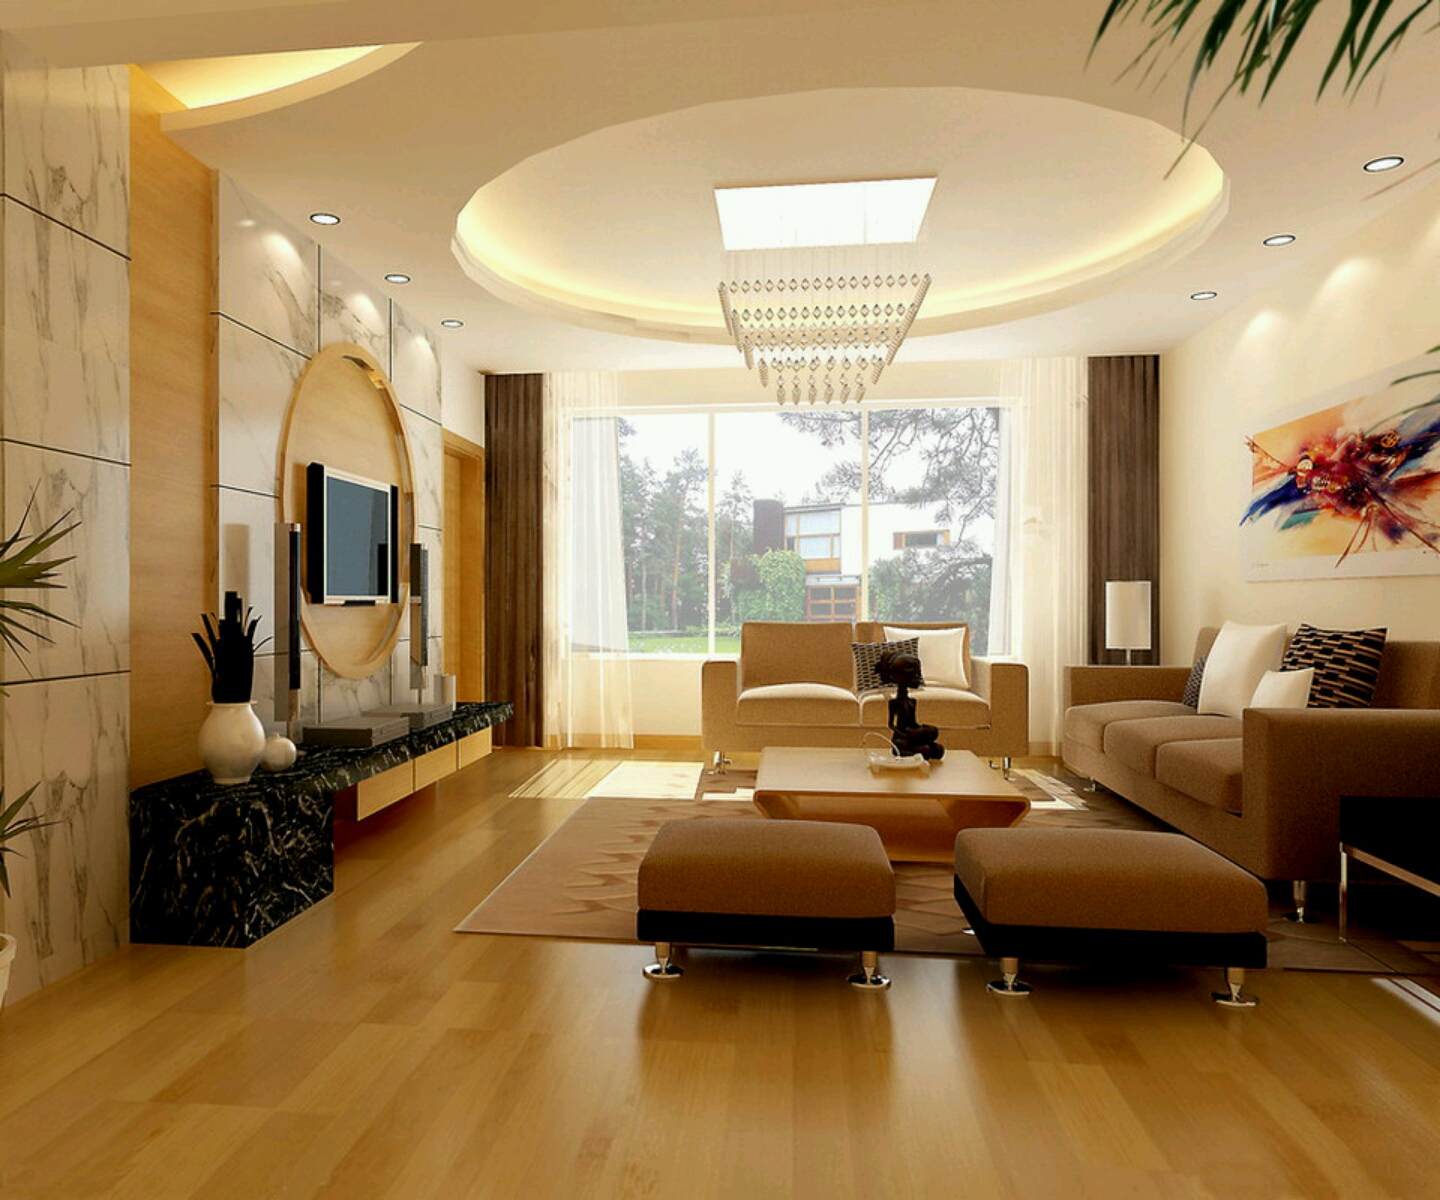 Modern interior decoration living rooms ceiling designs for Interior design ideas kitchen living room